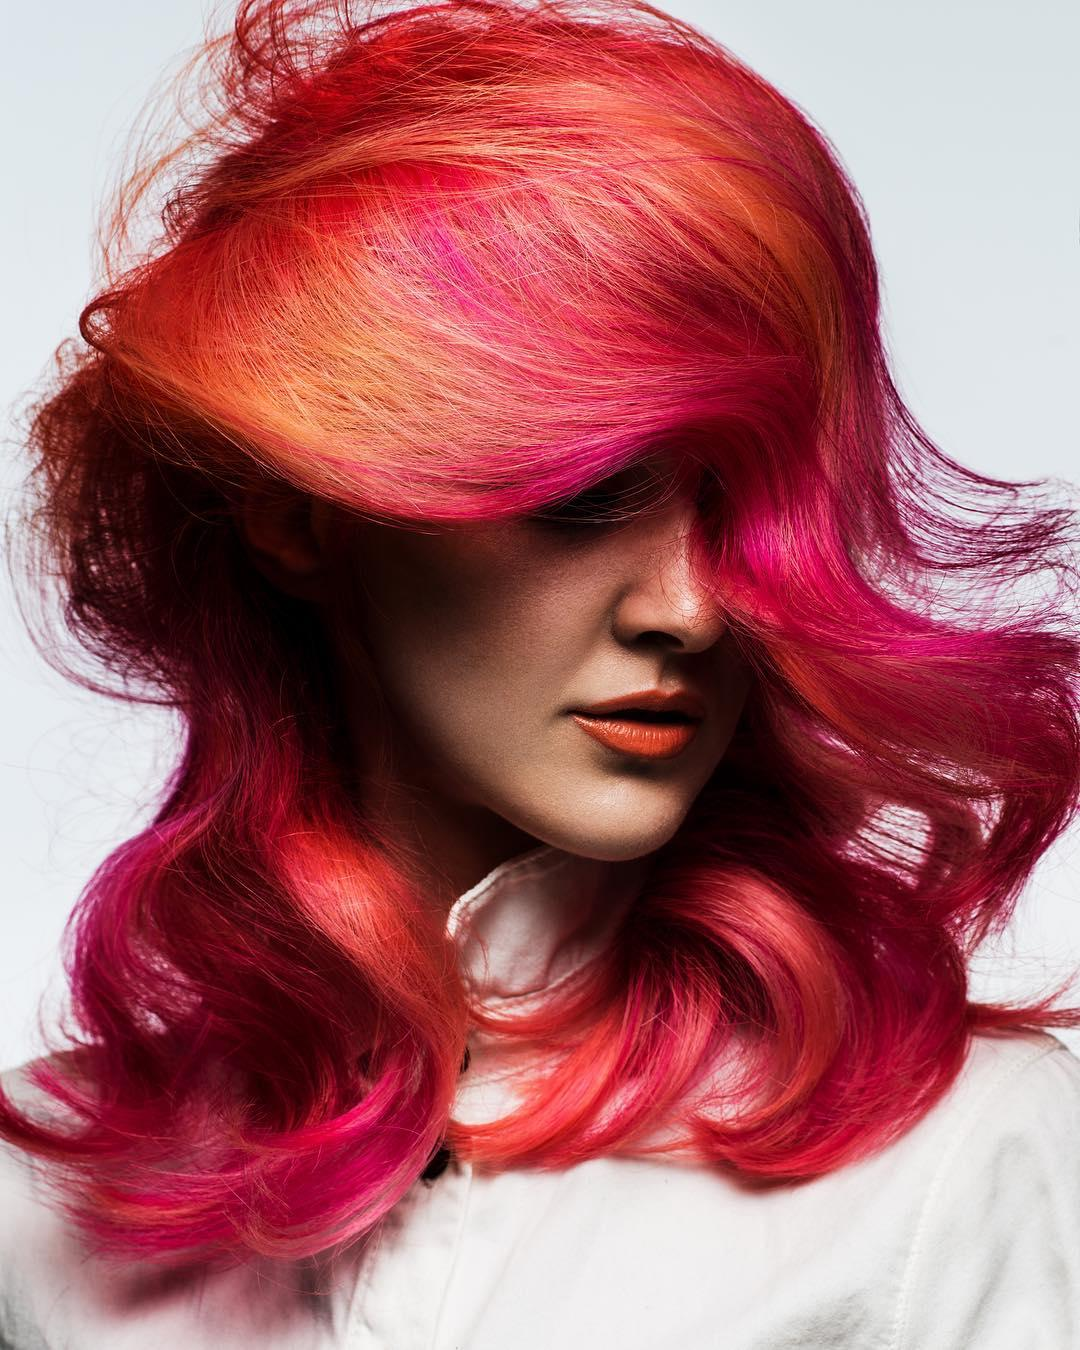 Woman with bright orange red pink hair, styled with loose waves